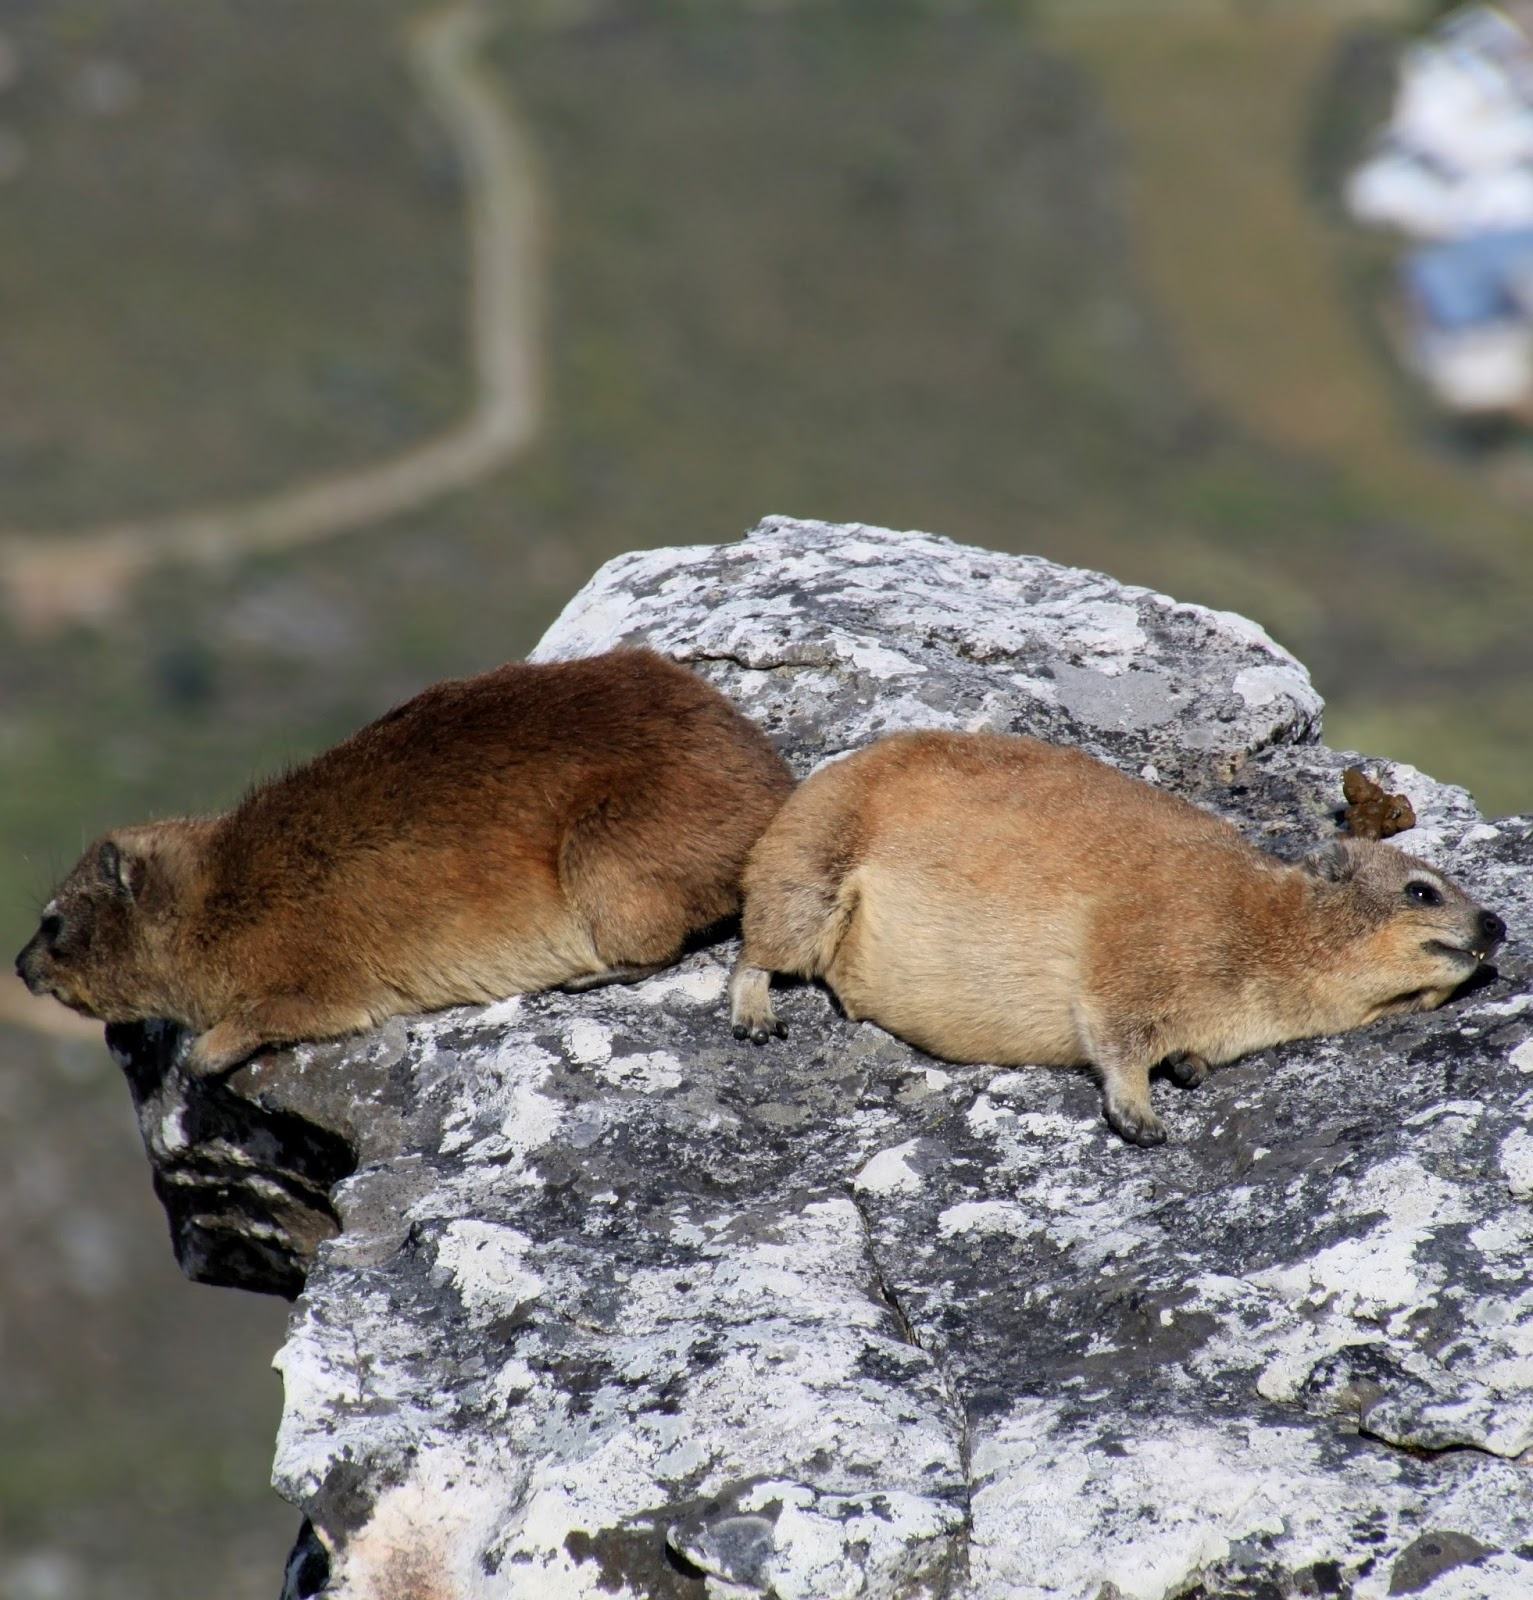 Picture of two hyrax sleeping.